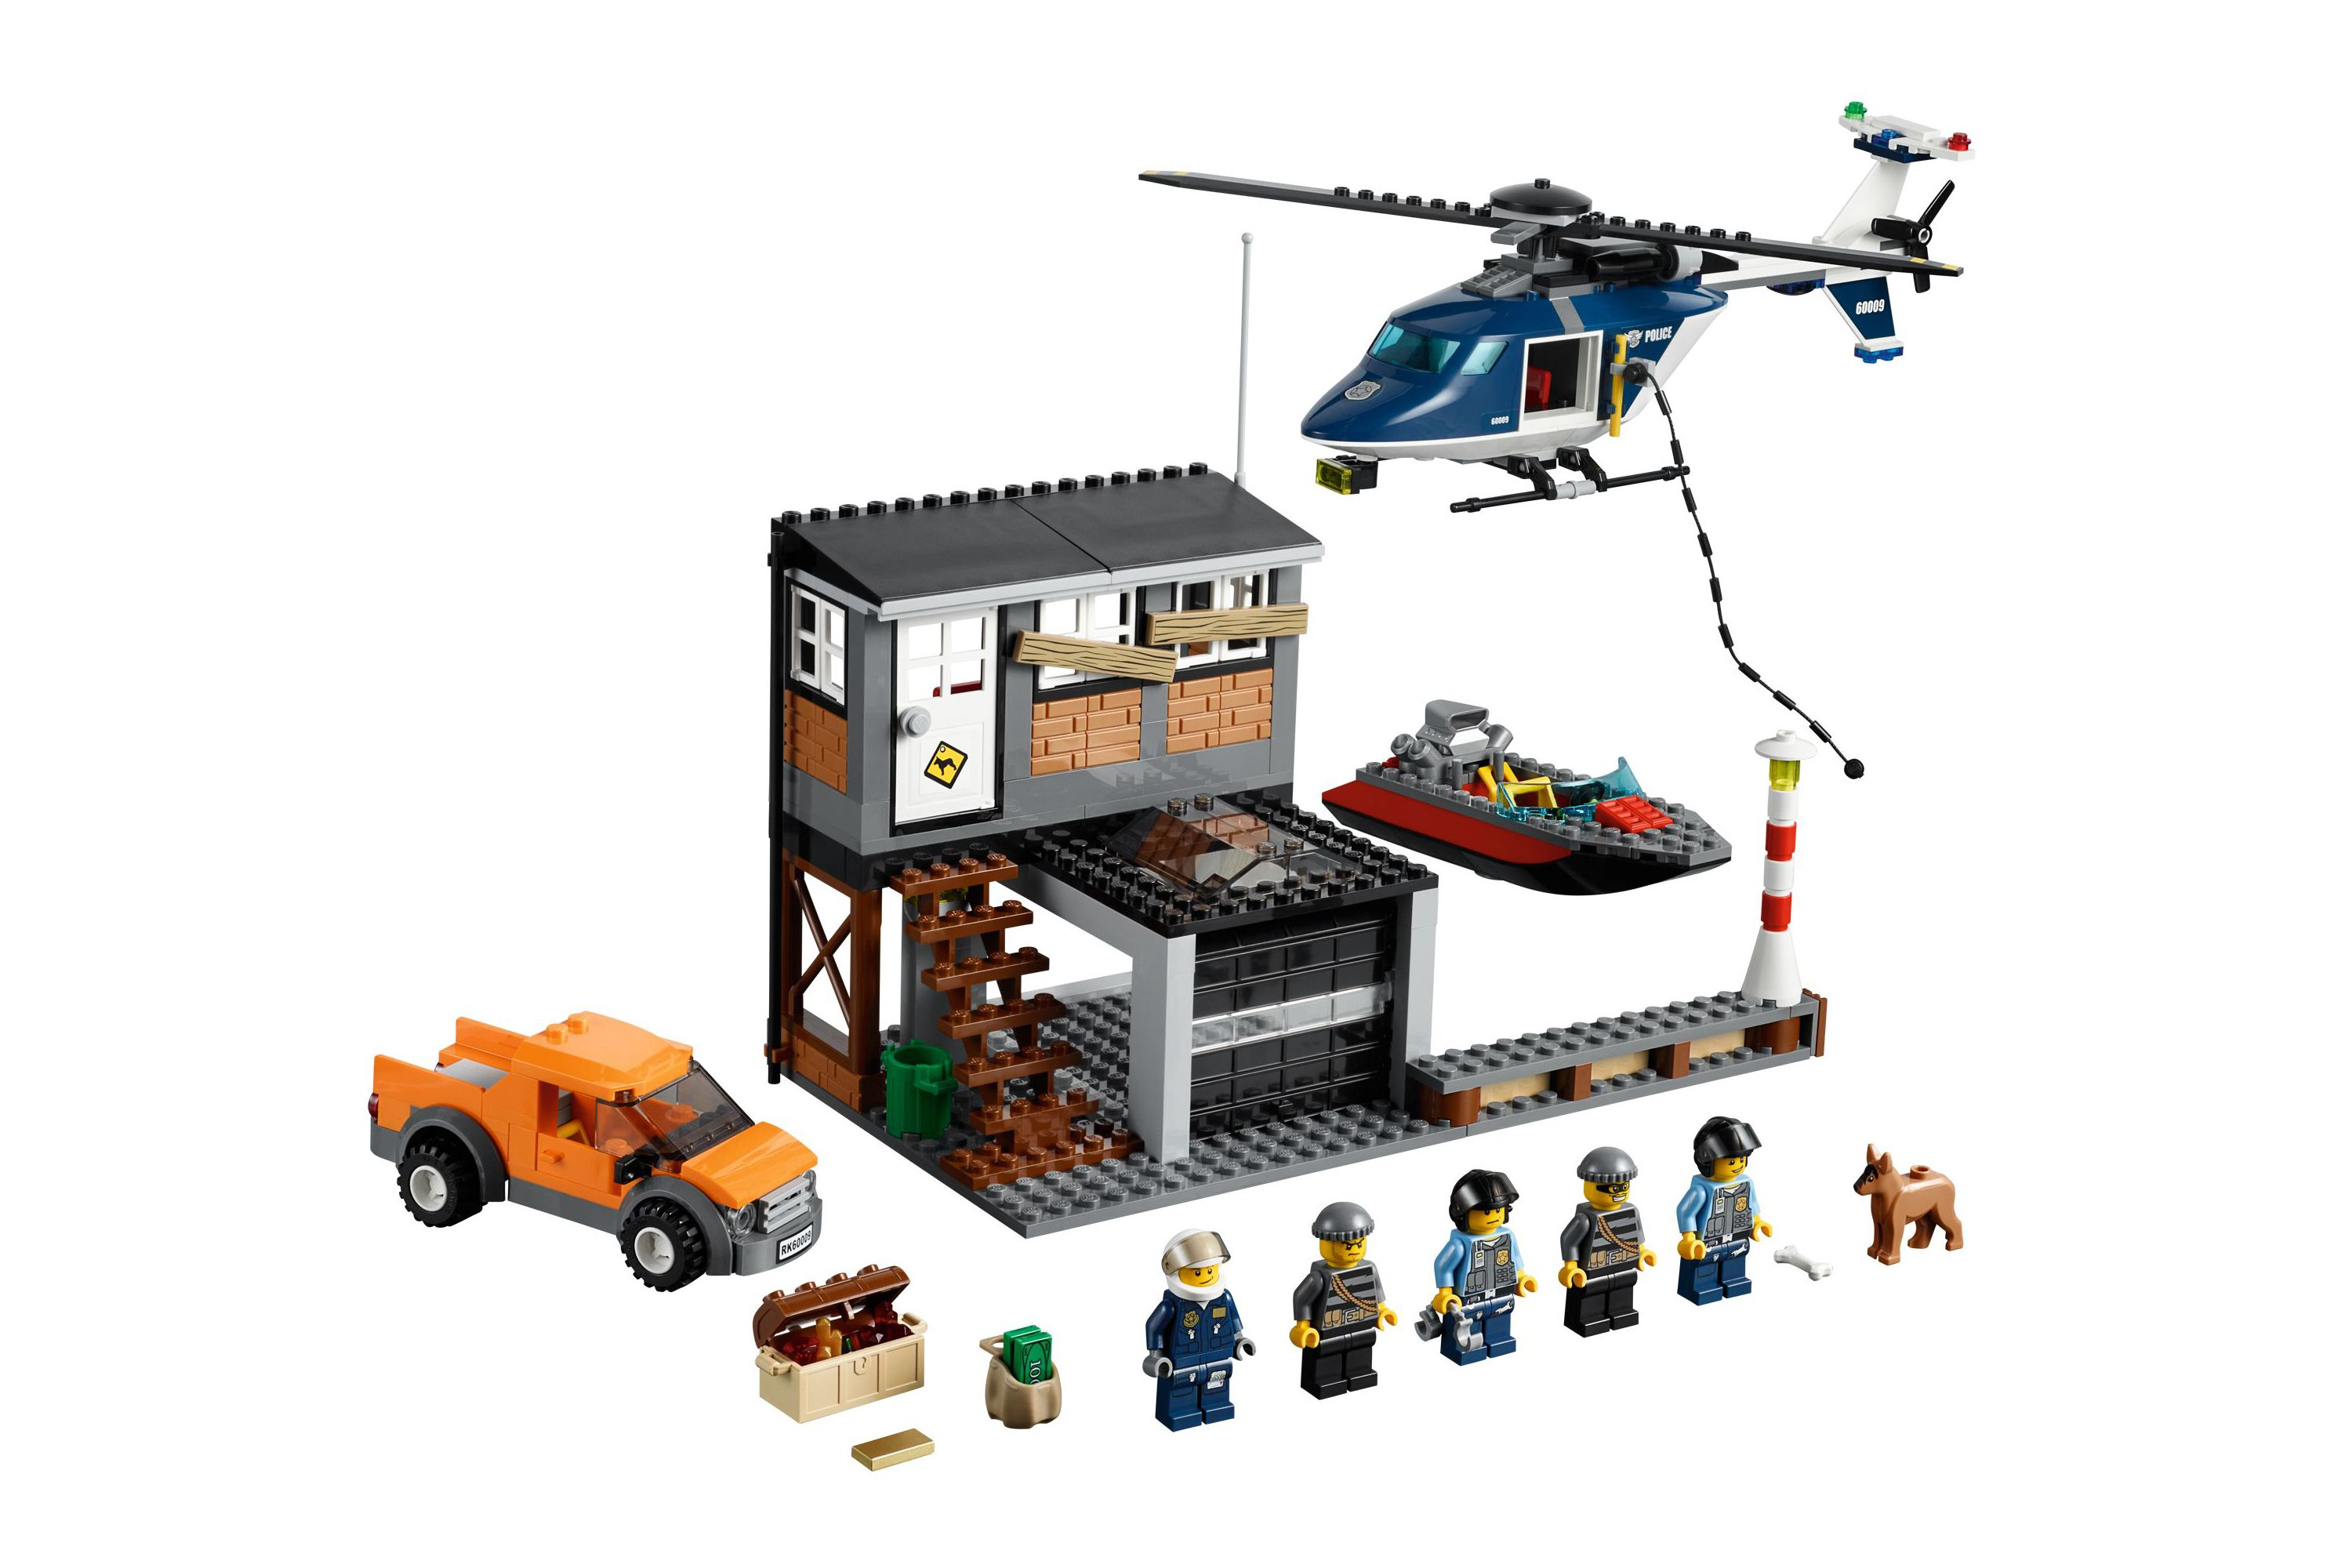 2013 Lego City Sets Lego Lego Lego Lego City Sets Lego City Lego City Helicopter